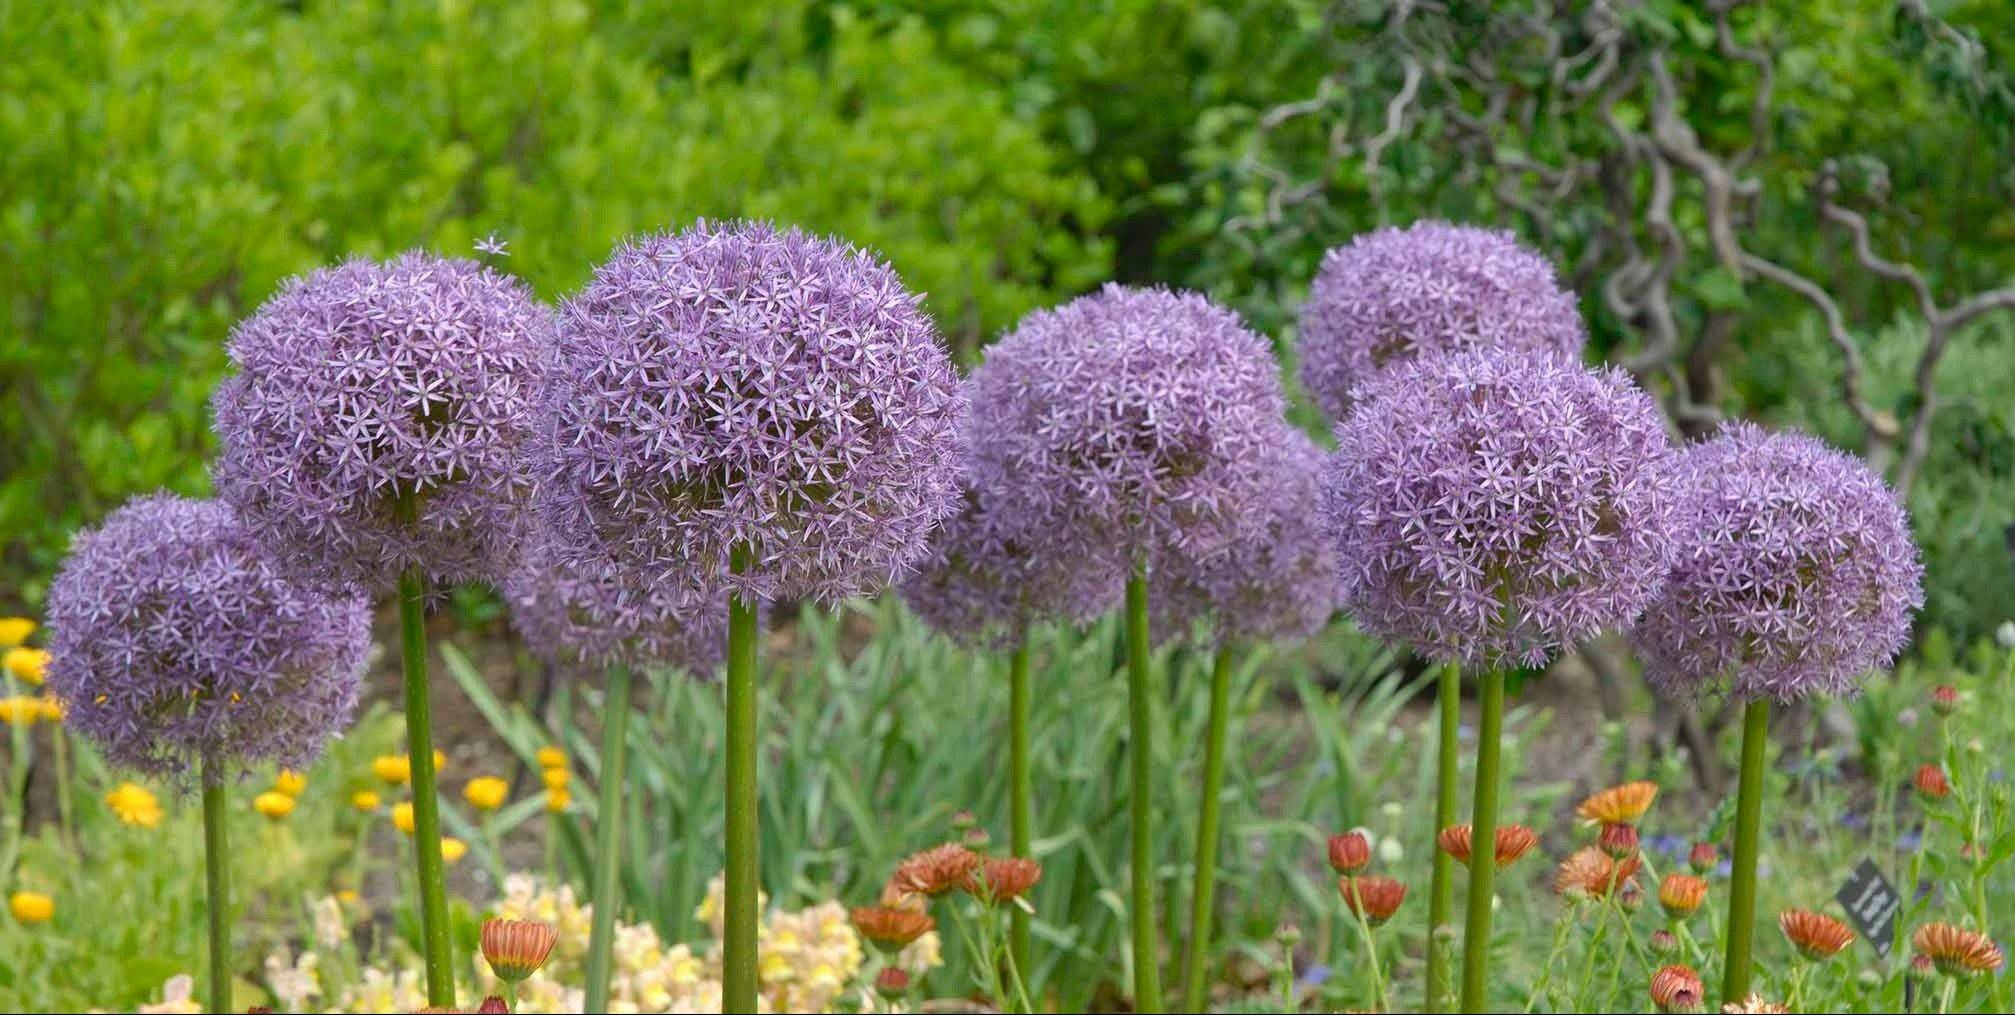 Allium Globemaster blooms in June with flowers clustered on stems reaching 2 to 3 feet.